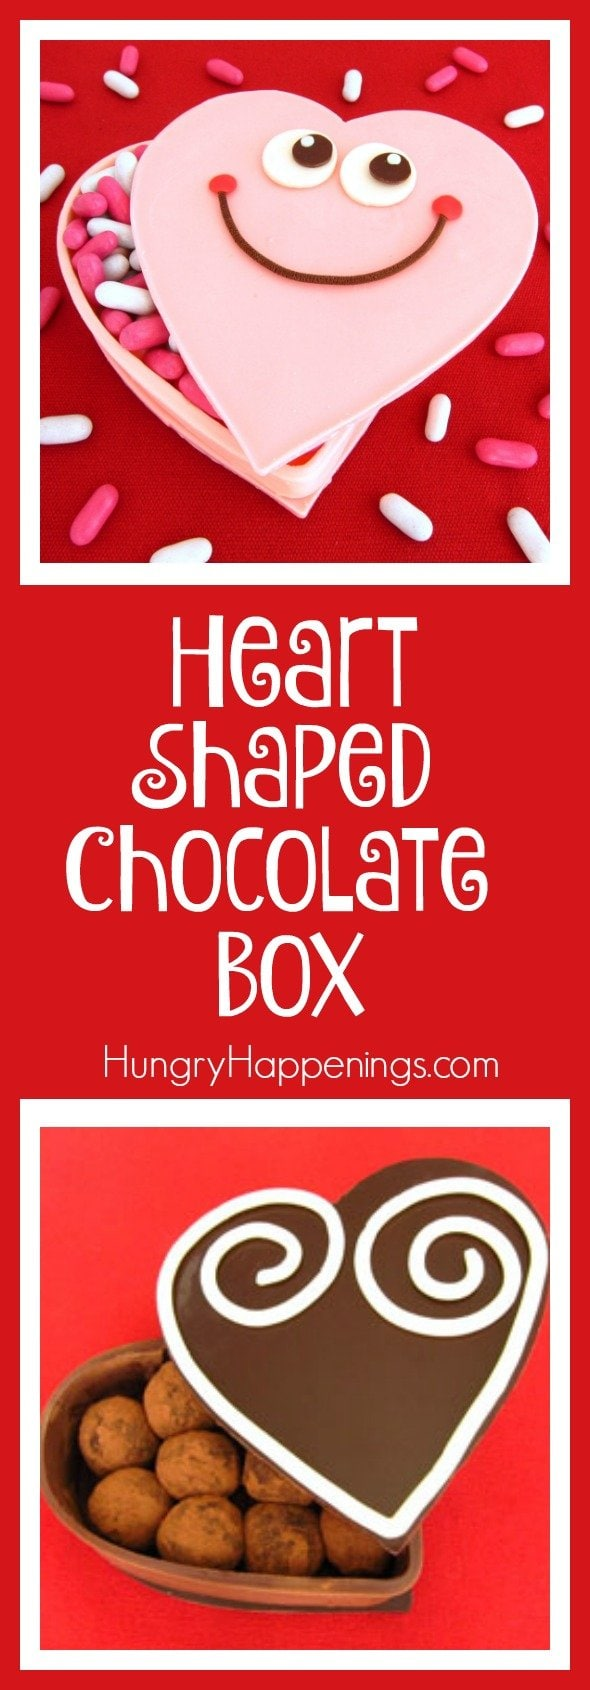 Store your candy inside a container that you can eat afterwards. Brilliantly Delicious! This Heart Shaped Chocolate Box make great gifts for Valentine's Day or any day!